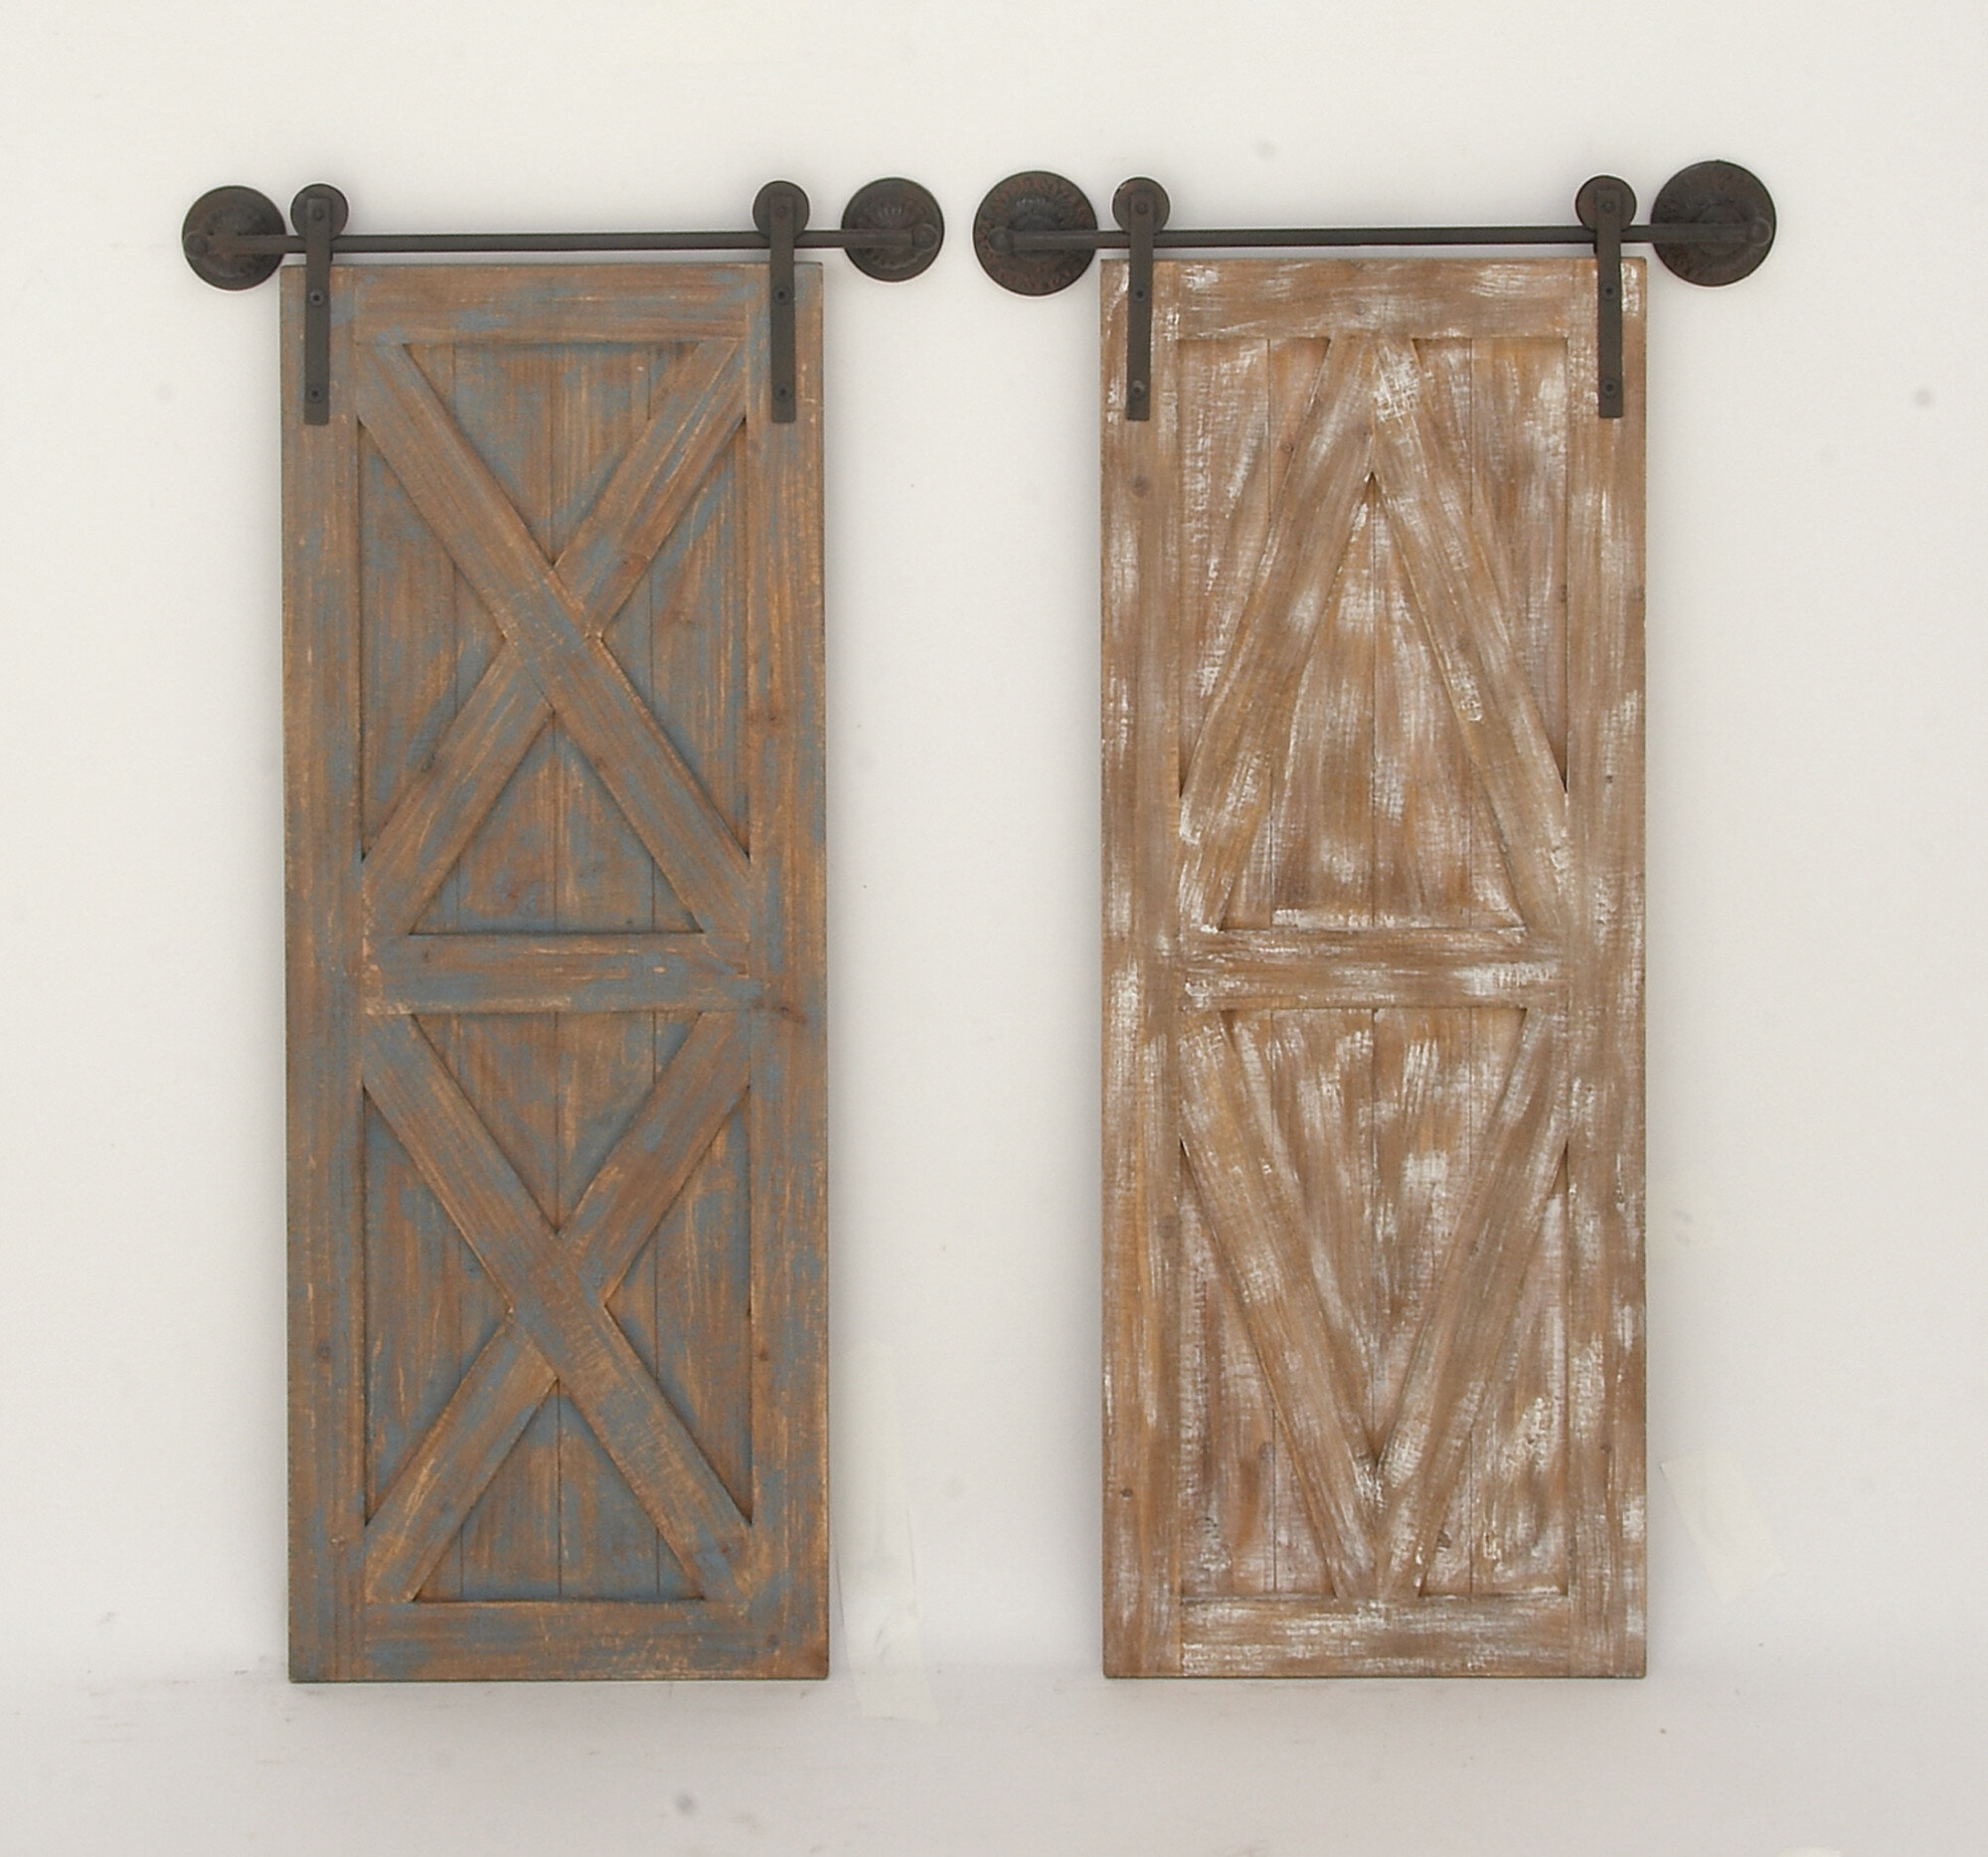 2 Piece Wood/metal Wall Décor with Brown Wood And Metal Wall Decor (Image 2 of 30)